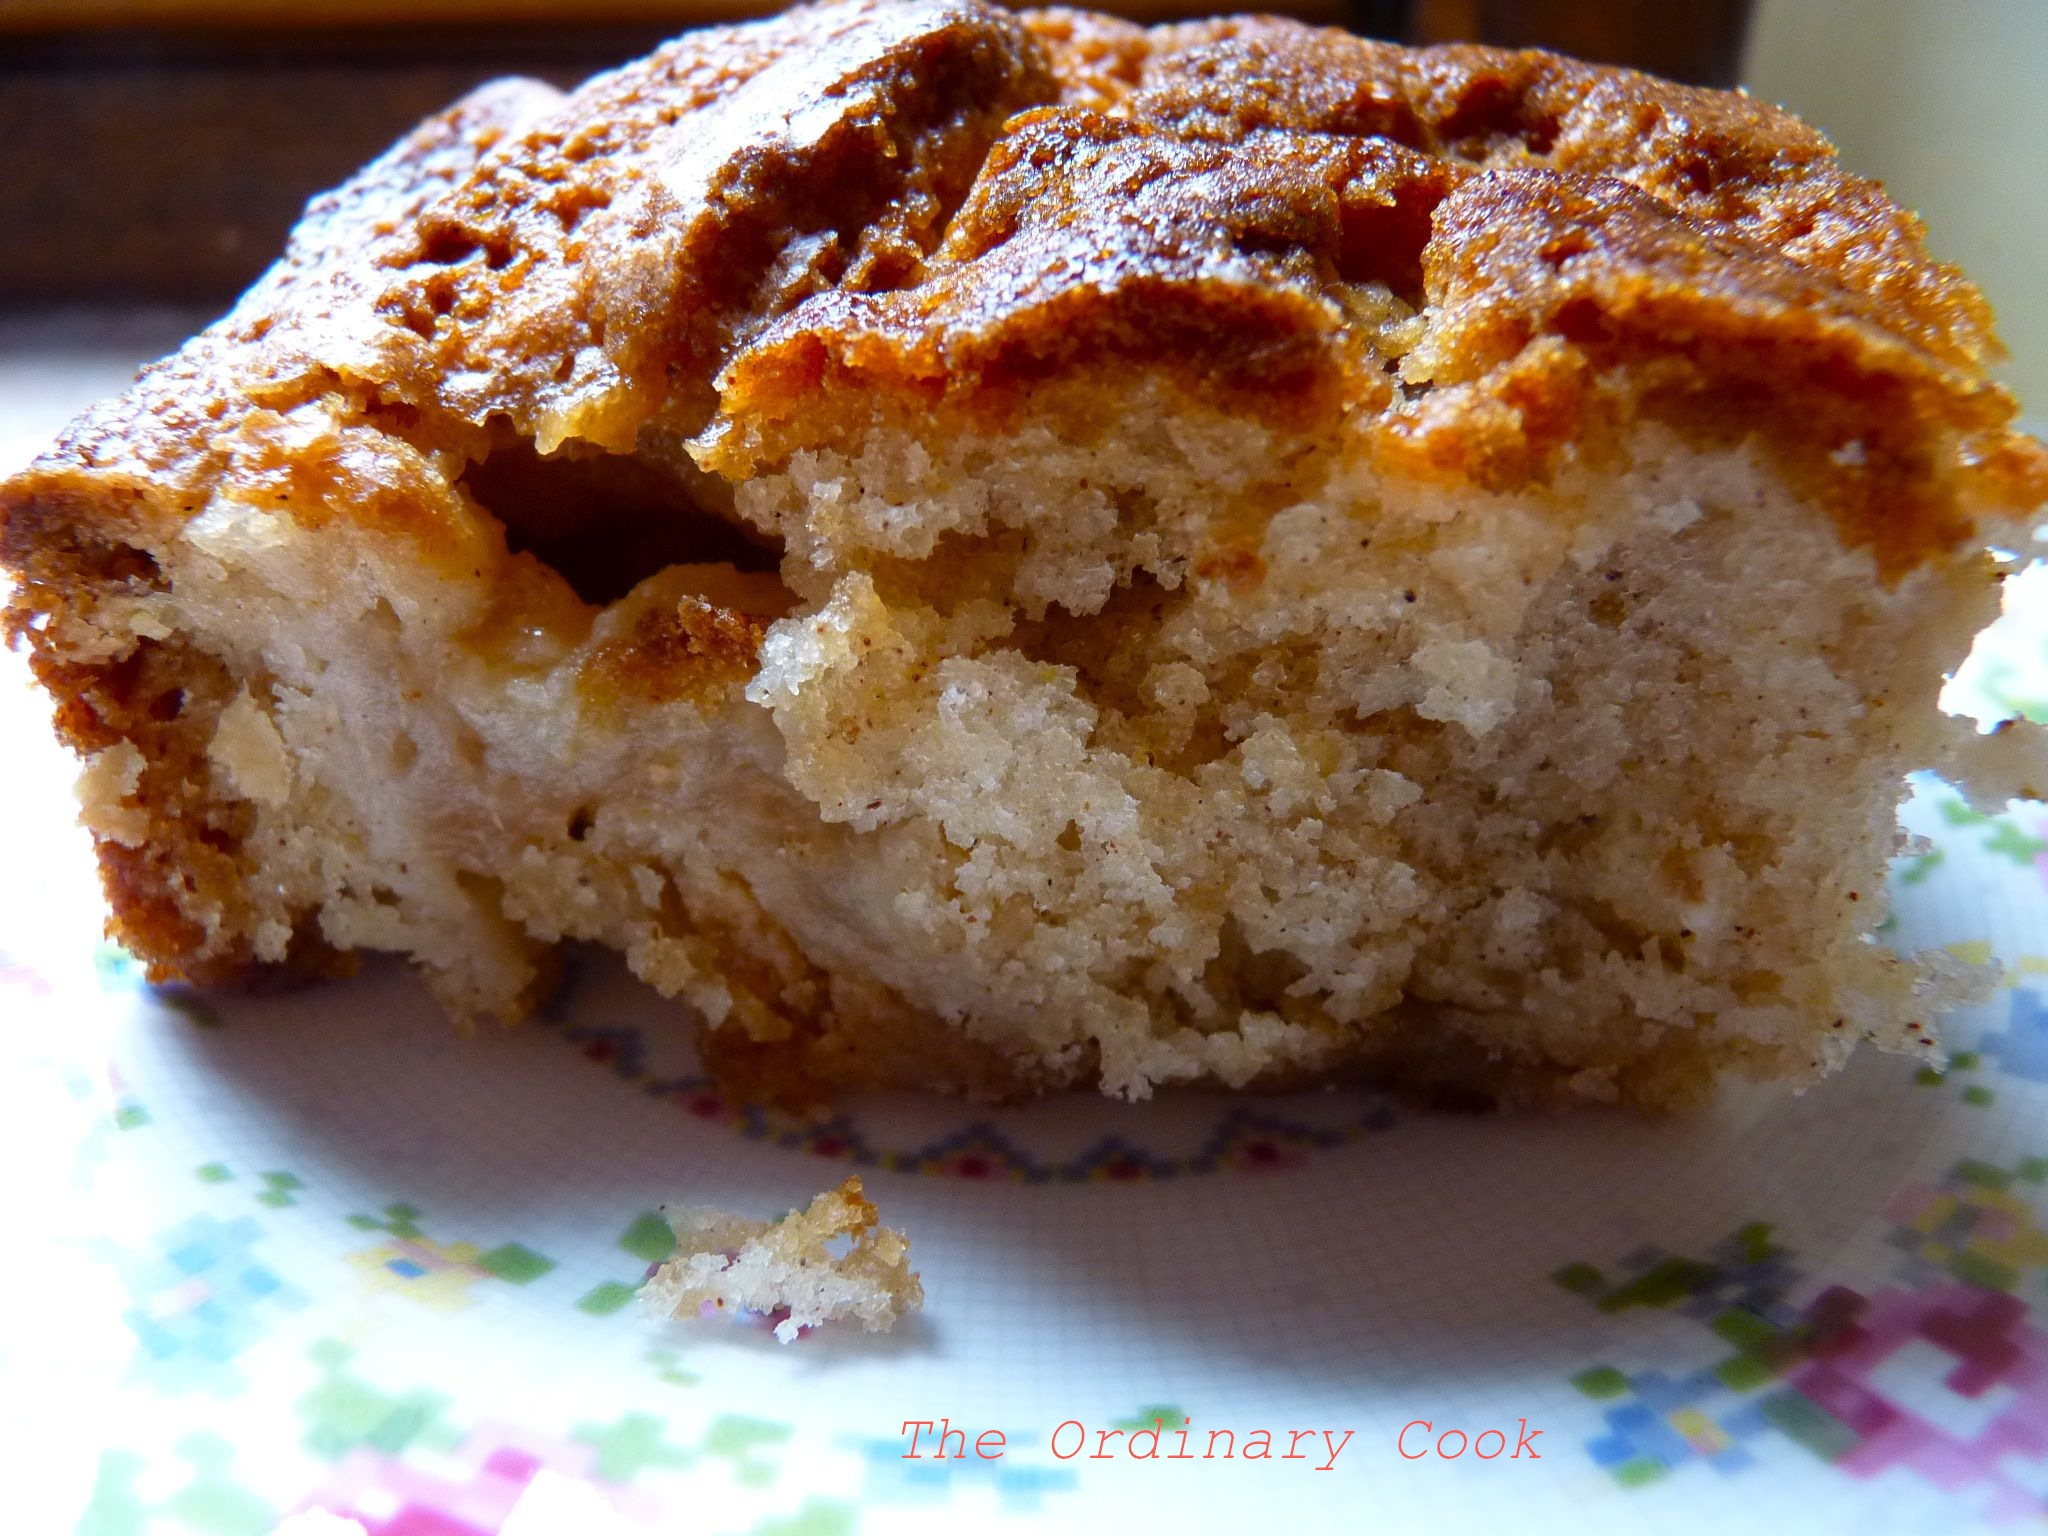 Herman   The Friendship Cake The Ordinary Cook